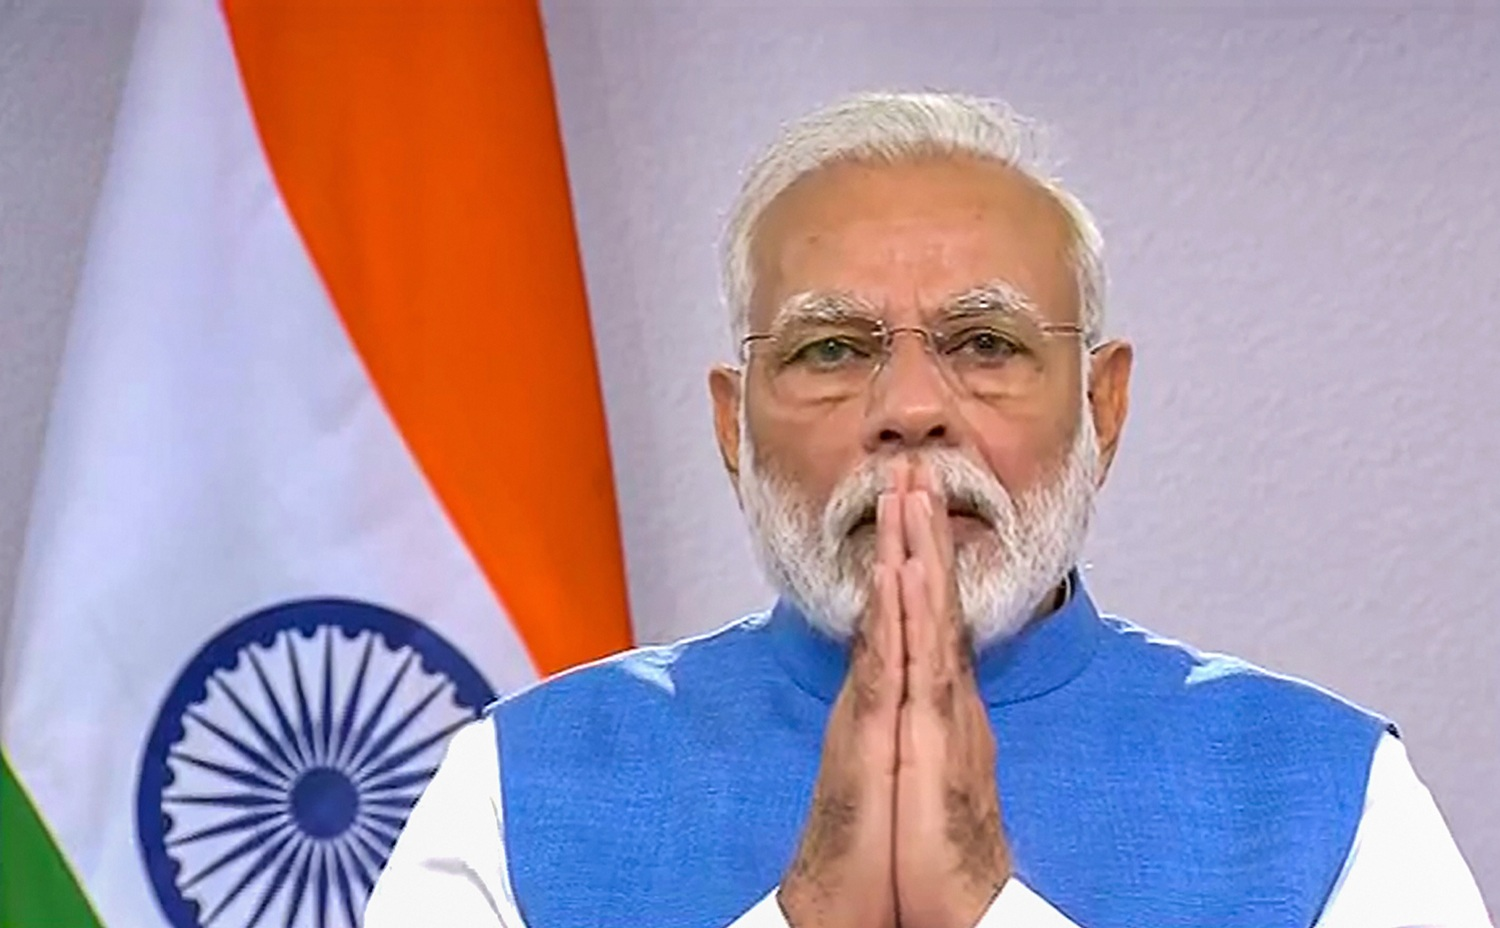 **EDS: VIDEO GRAB** New Delhi: Prime Minister Narendra Modi gestures during his address to the nation on coronavirus pandemic in New Delhi, Thursday, March 19, 2020. (PTI Photo)(PTI19-03-2020_000207B)